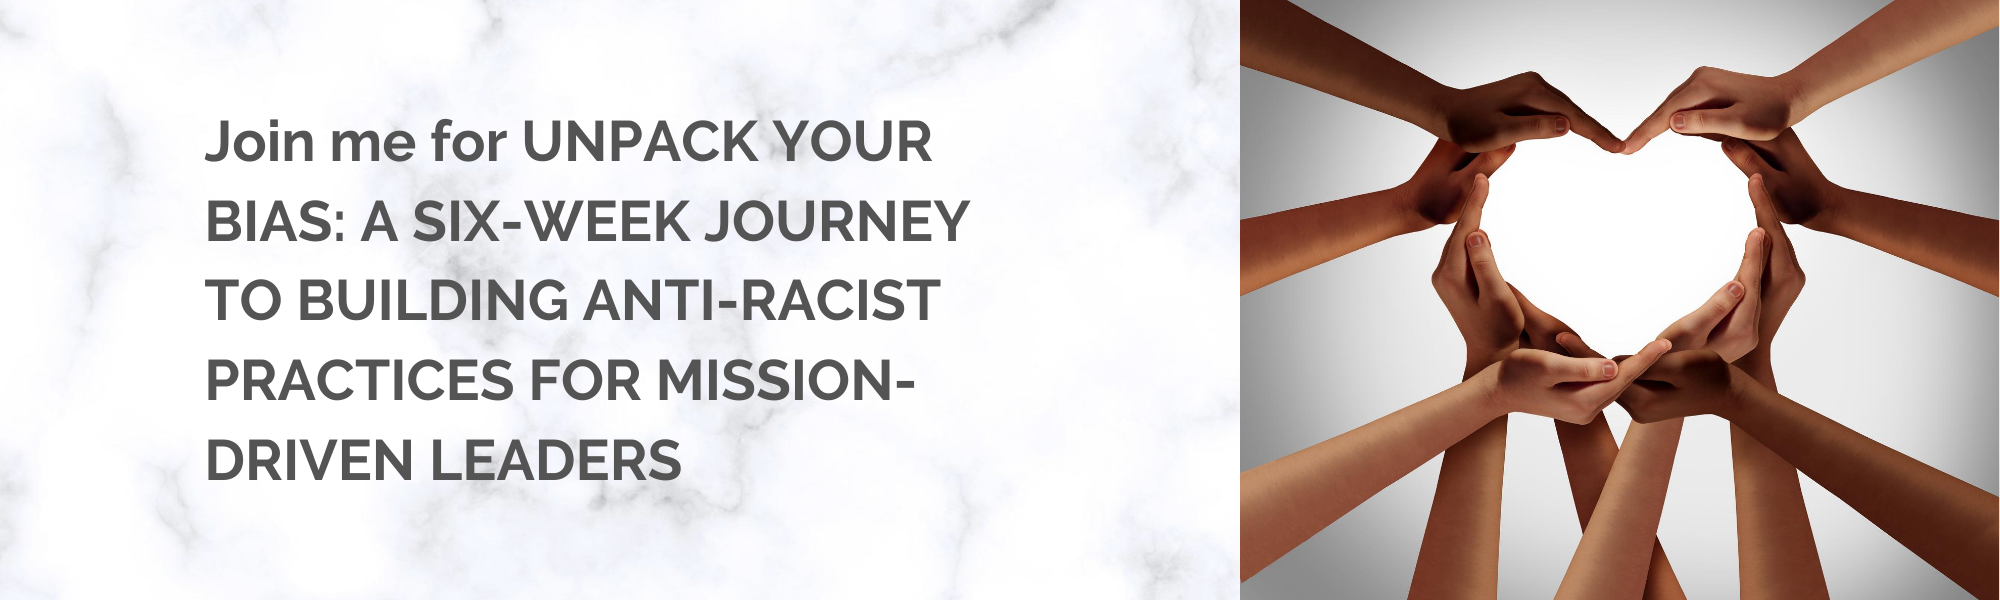 UNPACK YOUR BIAS: A SIX-WEEK JOURNEY TO BUILDING ANTI-RACIST PRACTICES FOR MISSION-DRIVEN LEADERS